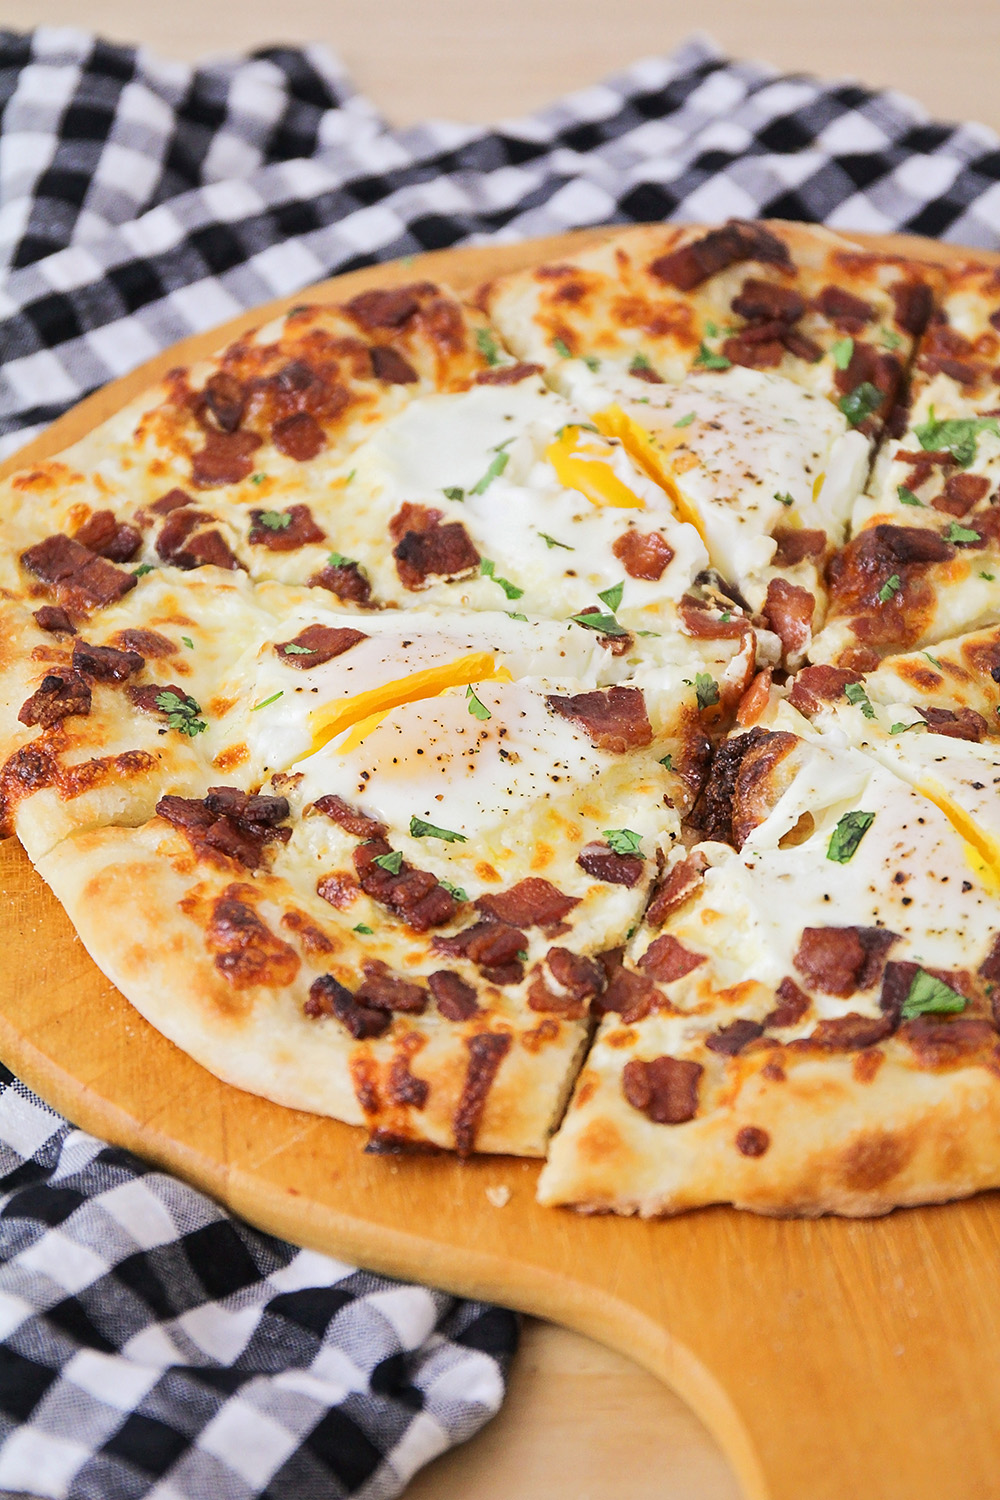 This bacon breakfast pizza is perfect for any meal of the day! It's so flavorful and delicious, and easy to make too!